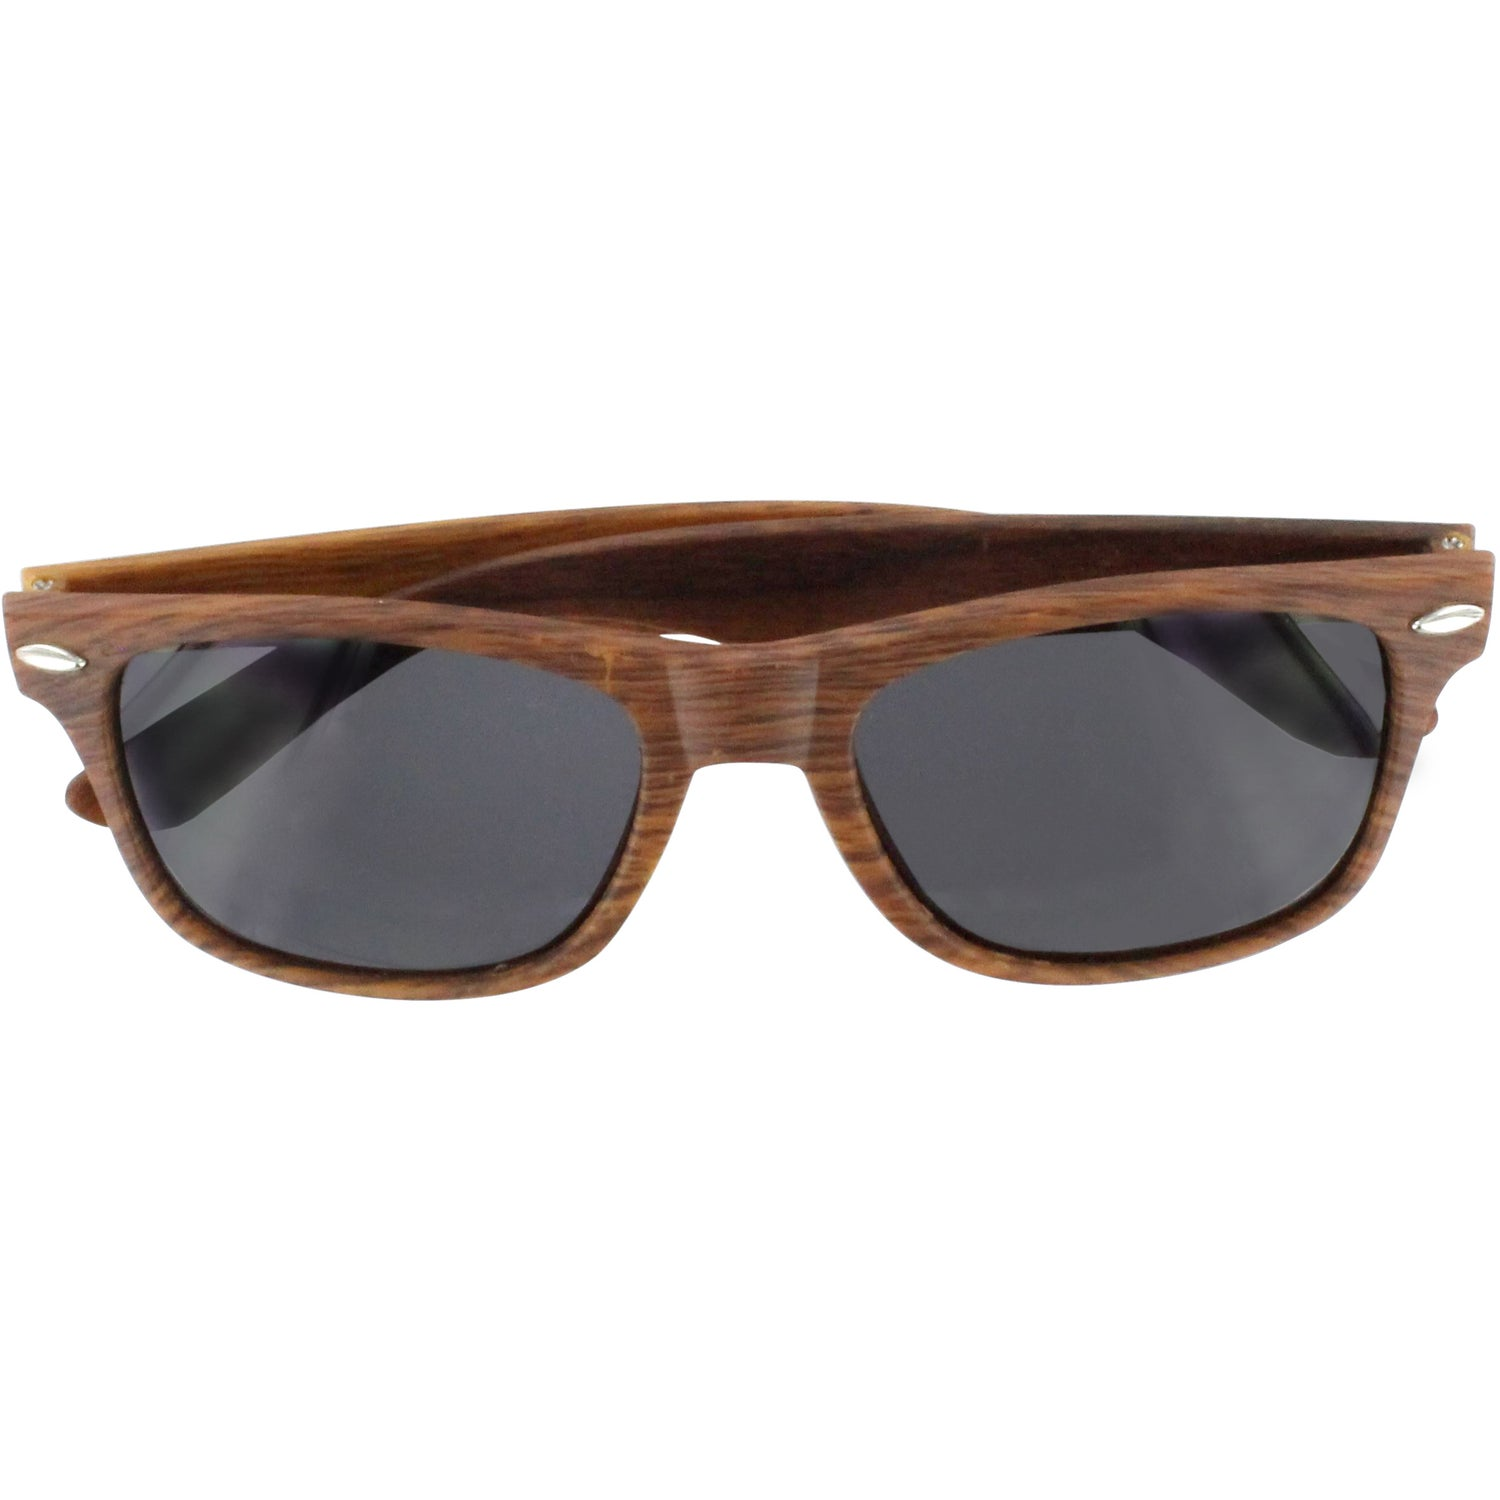 Do Sunglasses Have Sizes  promotional wood grain miami sunglasses with custom logo for 1 38 ea